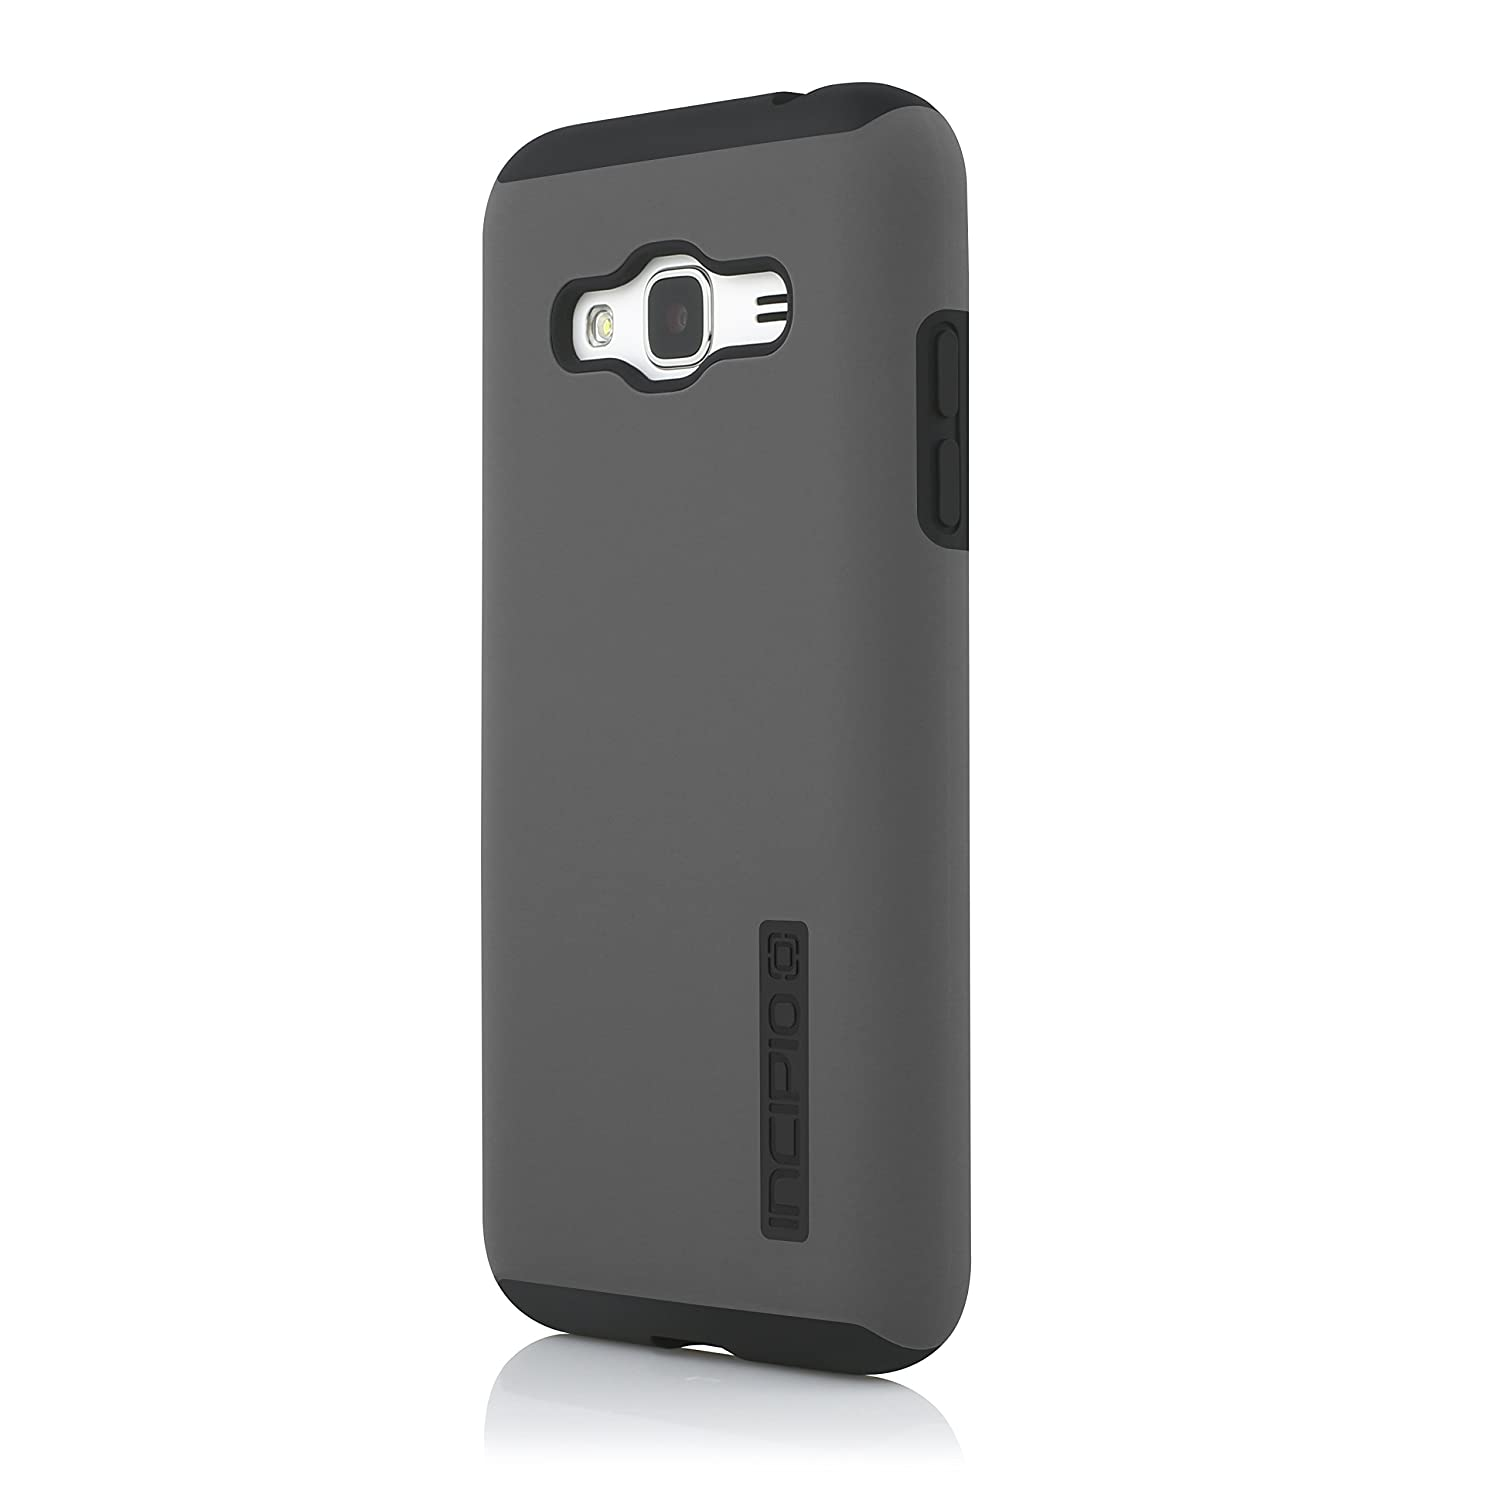 new concept 95bac c553f Incipio Cell Phone Case for Samsung Galaxy J3 - Retail Packaging -  Gray/Black